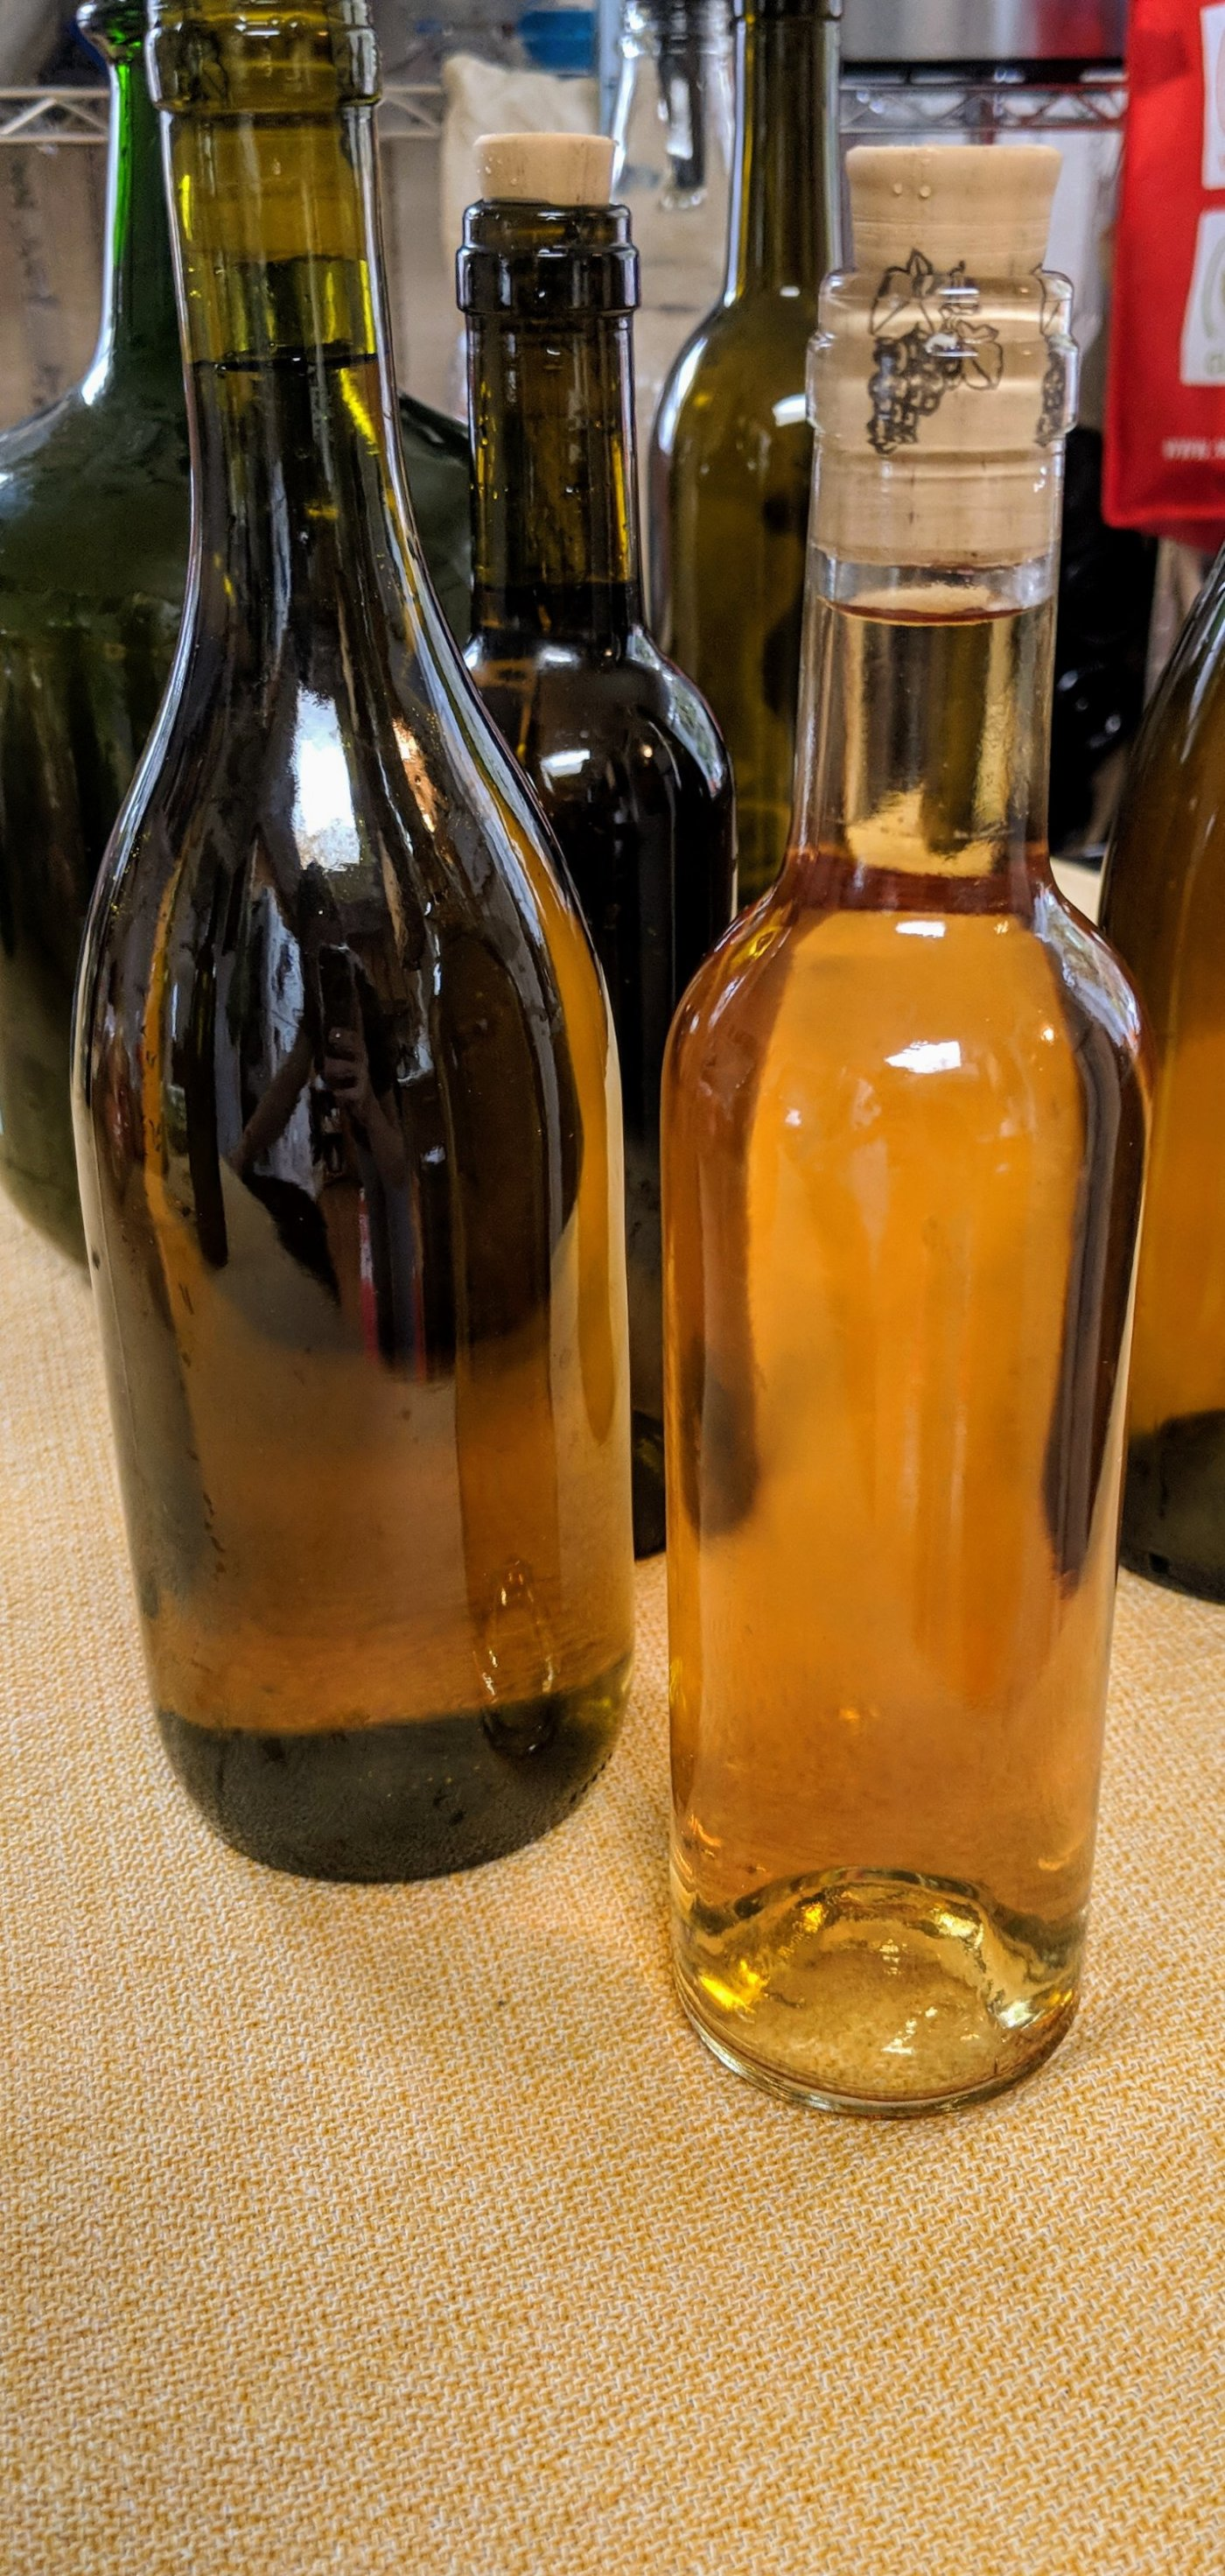 Bottled orange wine